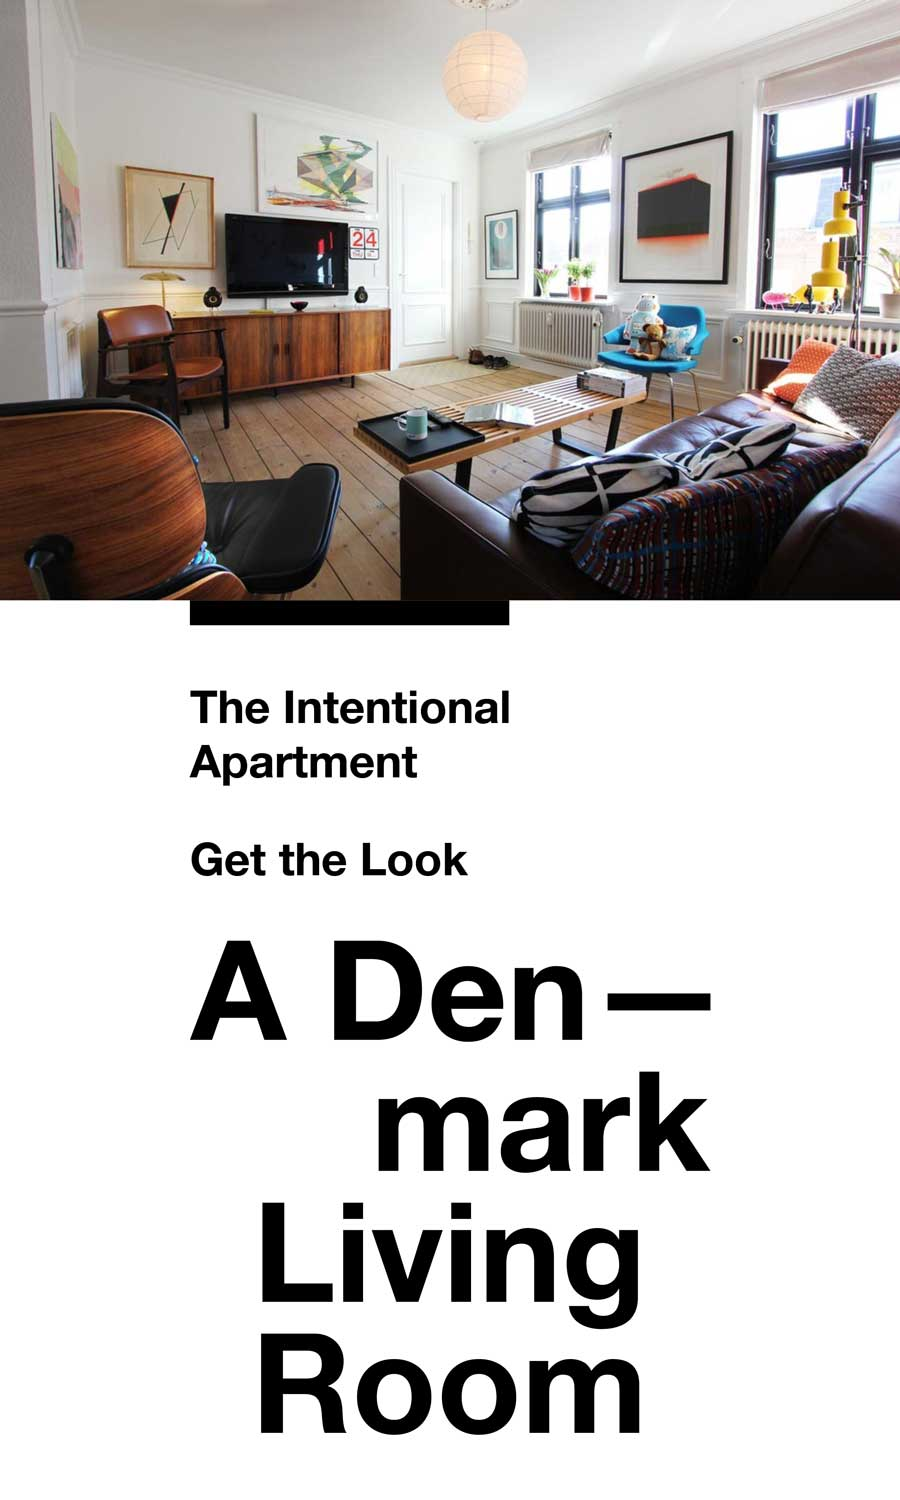 The Intentional Apartment: Get the Look   A Denmark Living Room